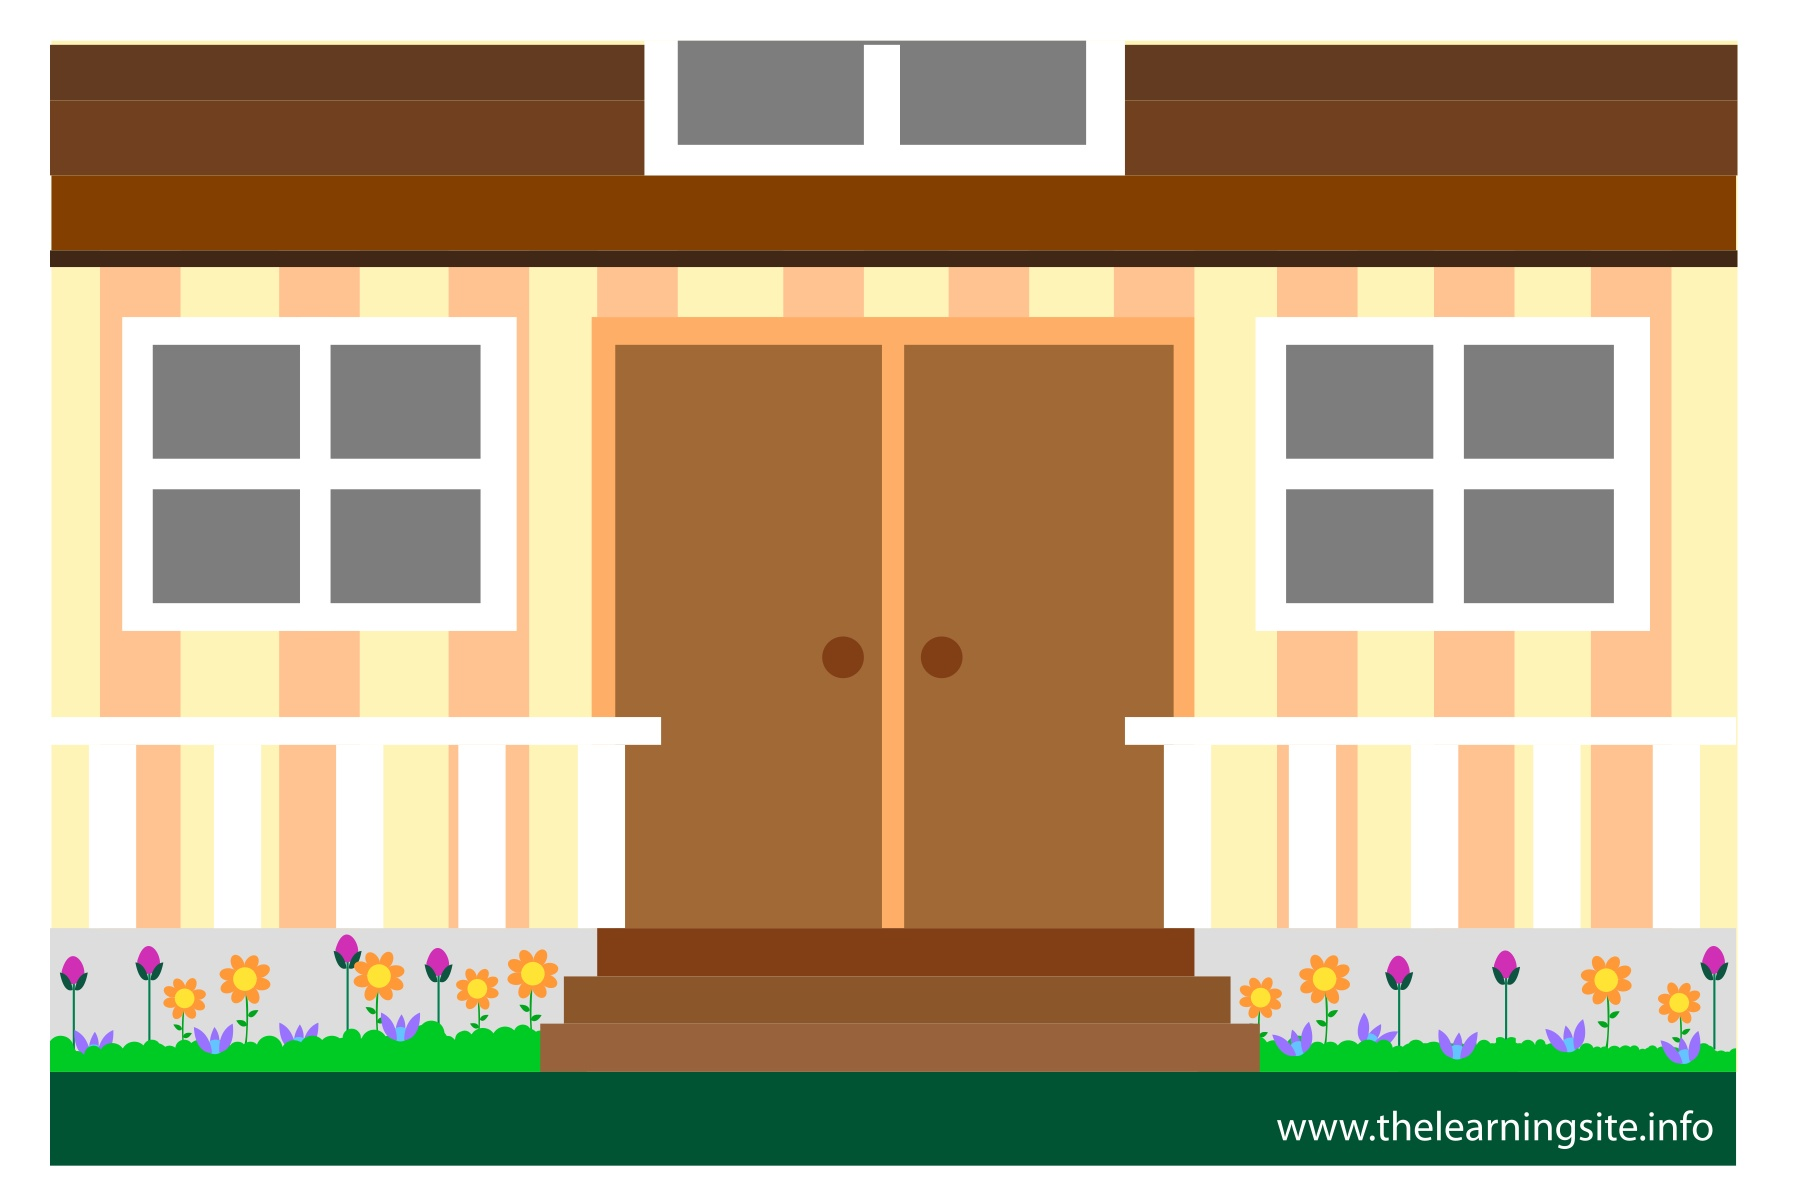 flashcard-parts-of-a-house-porch